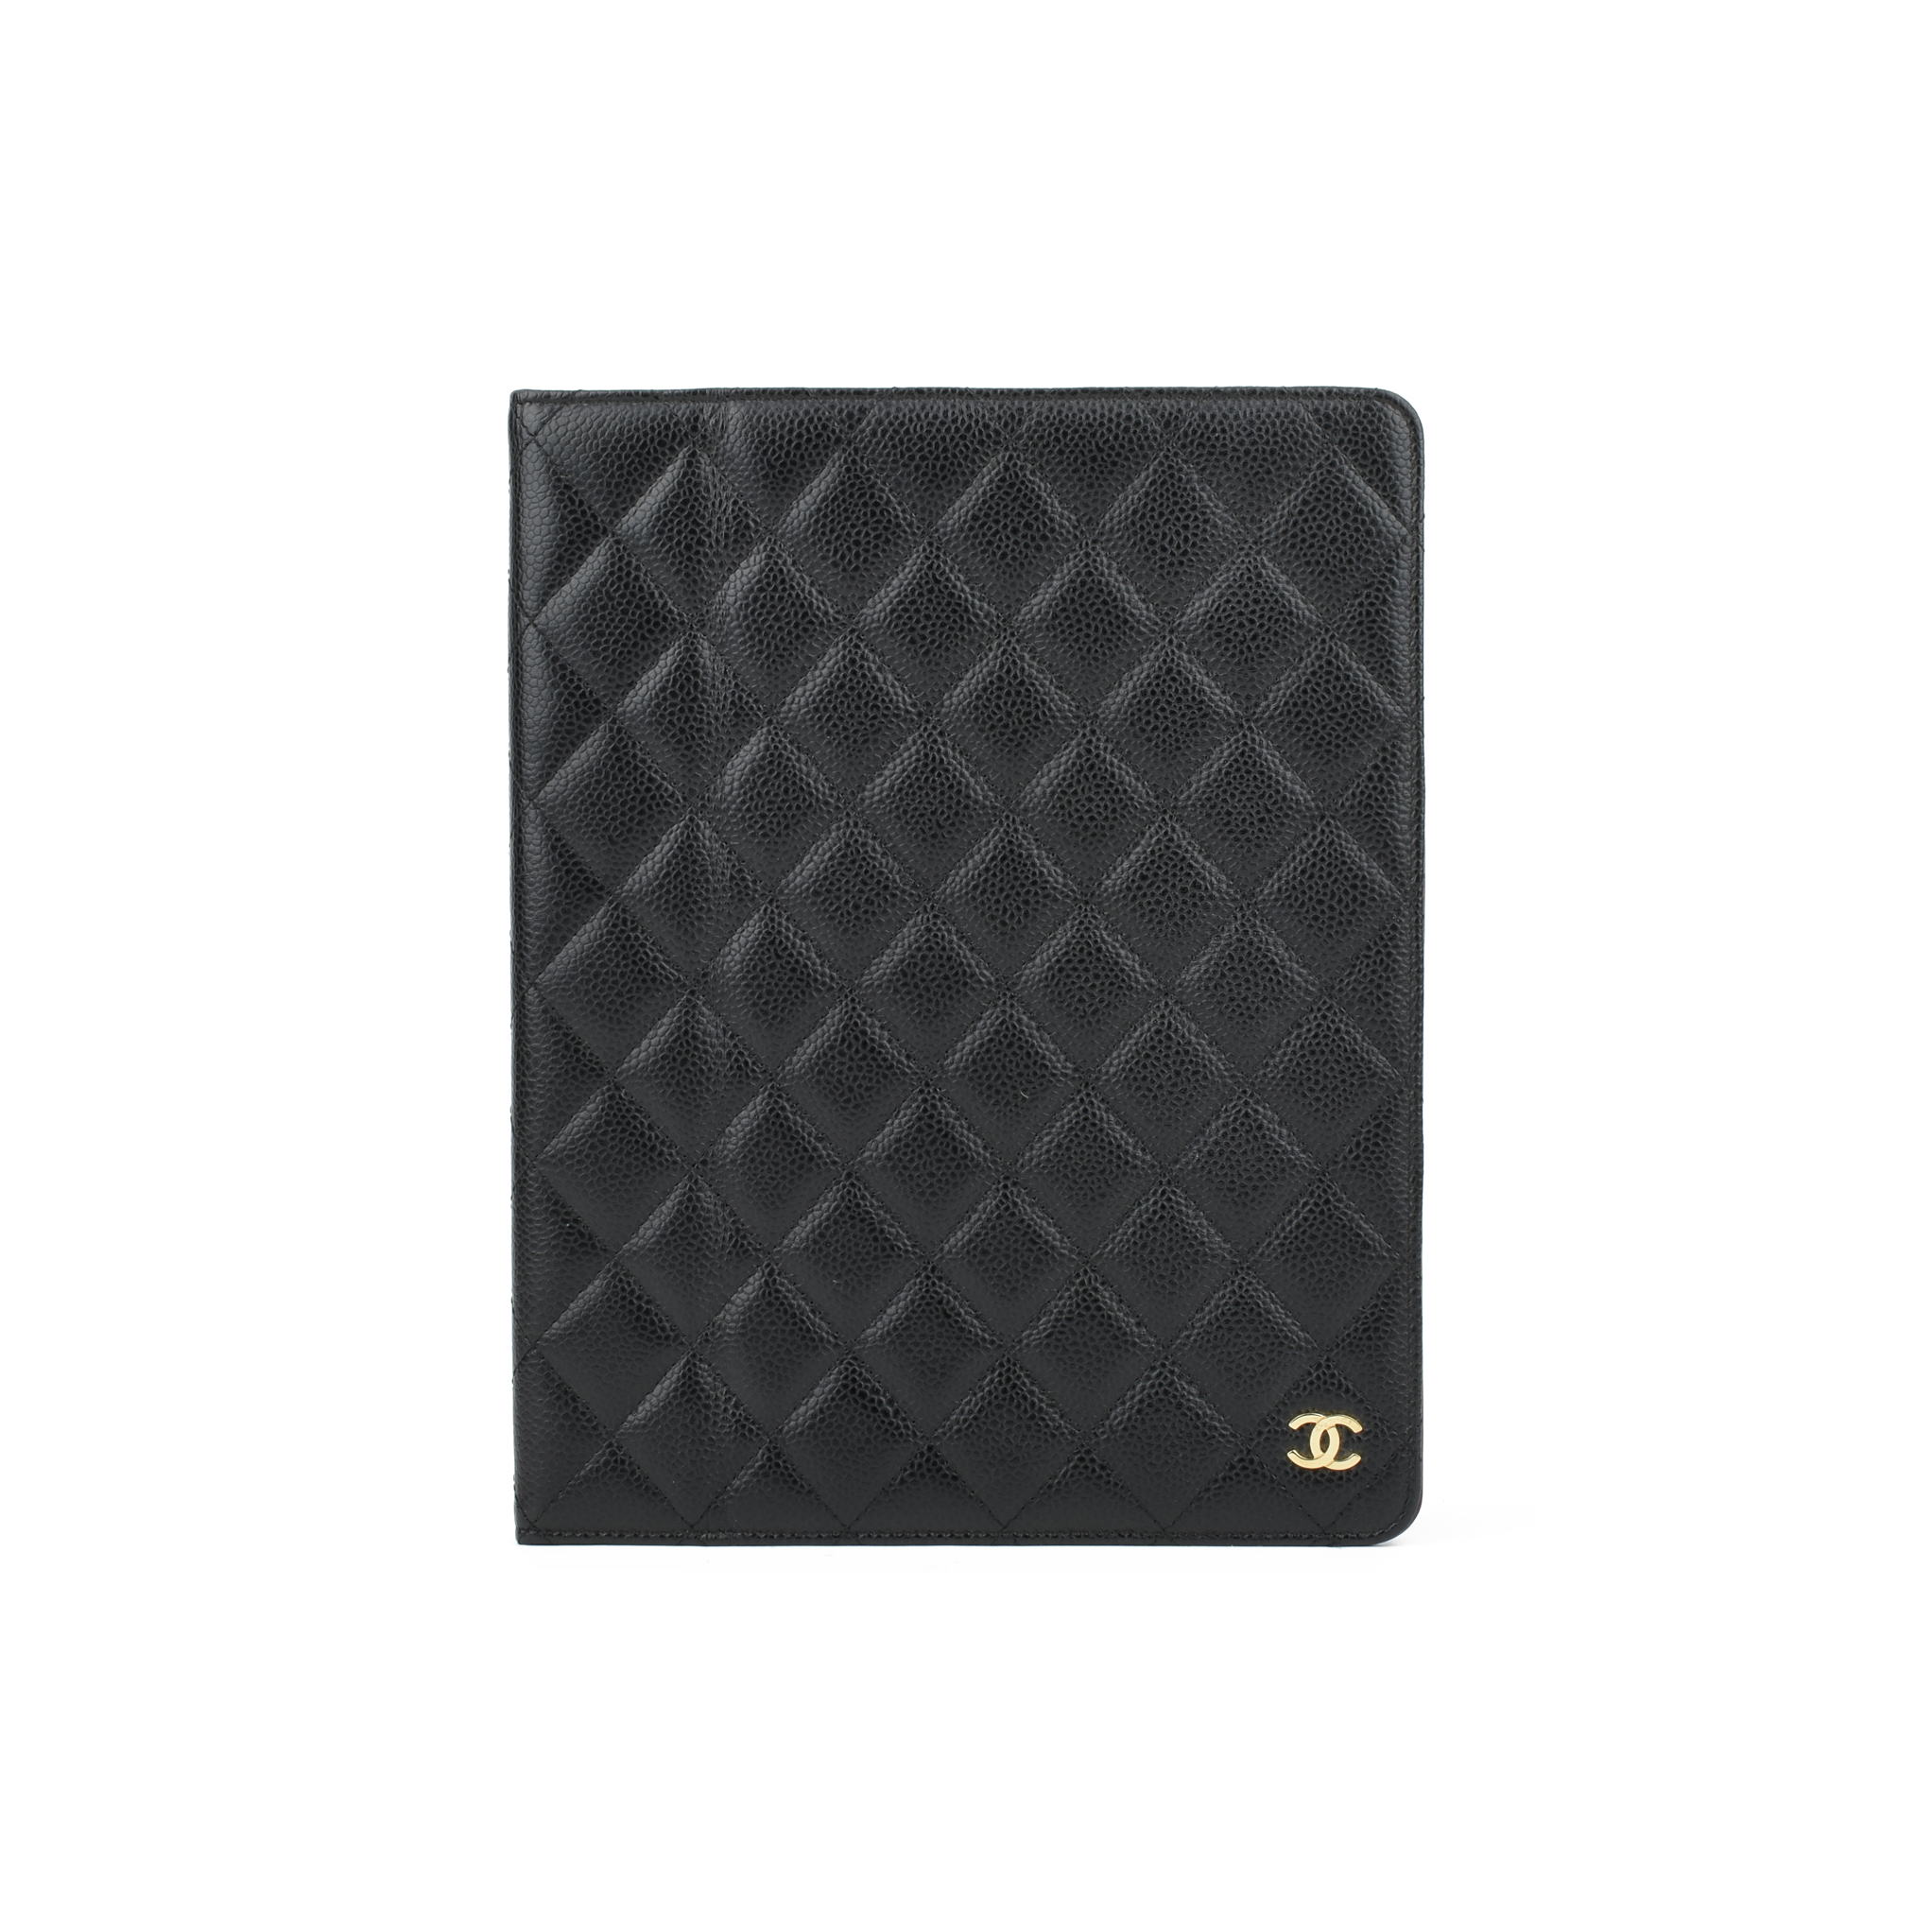 19ed81247f16 Authentic Second Hand Chanel Caviar Ipad Case (PSS-051-00280) | THE FIFTH  COLLECTION